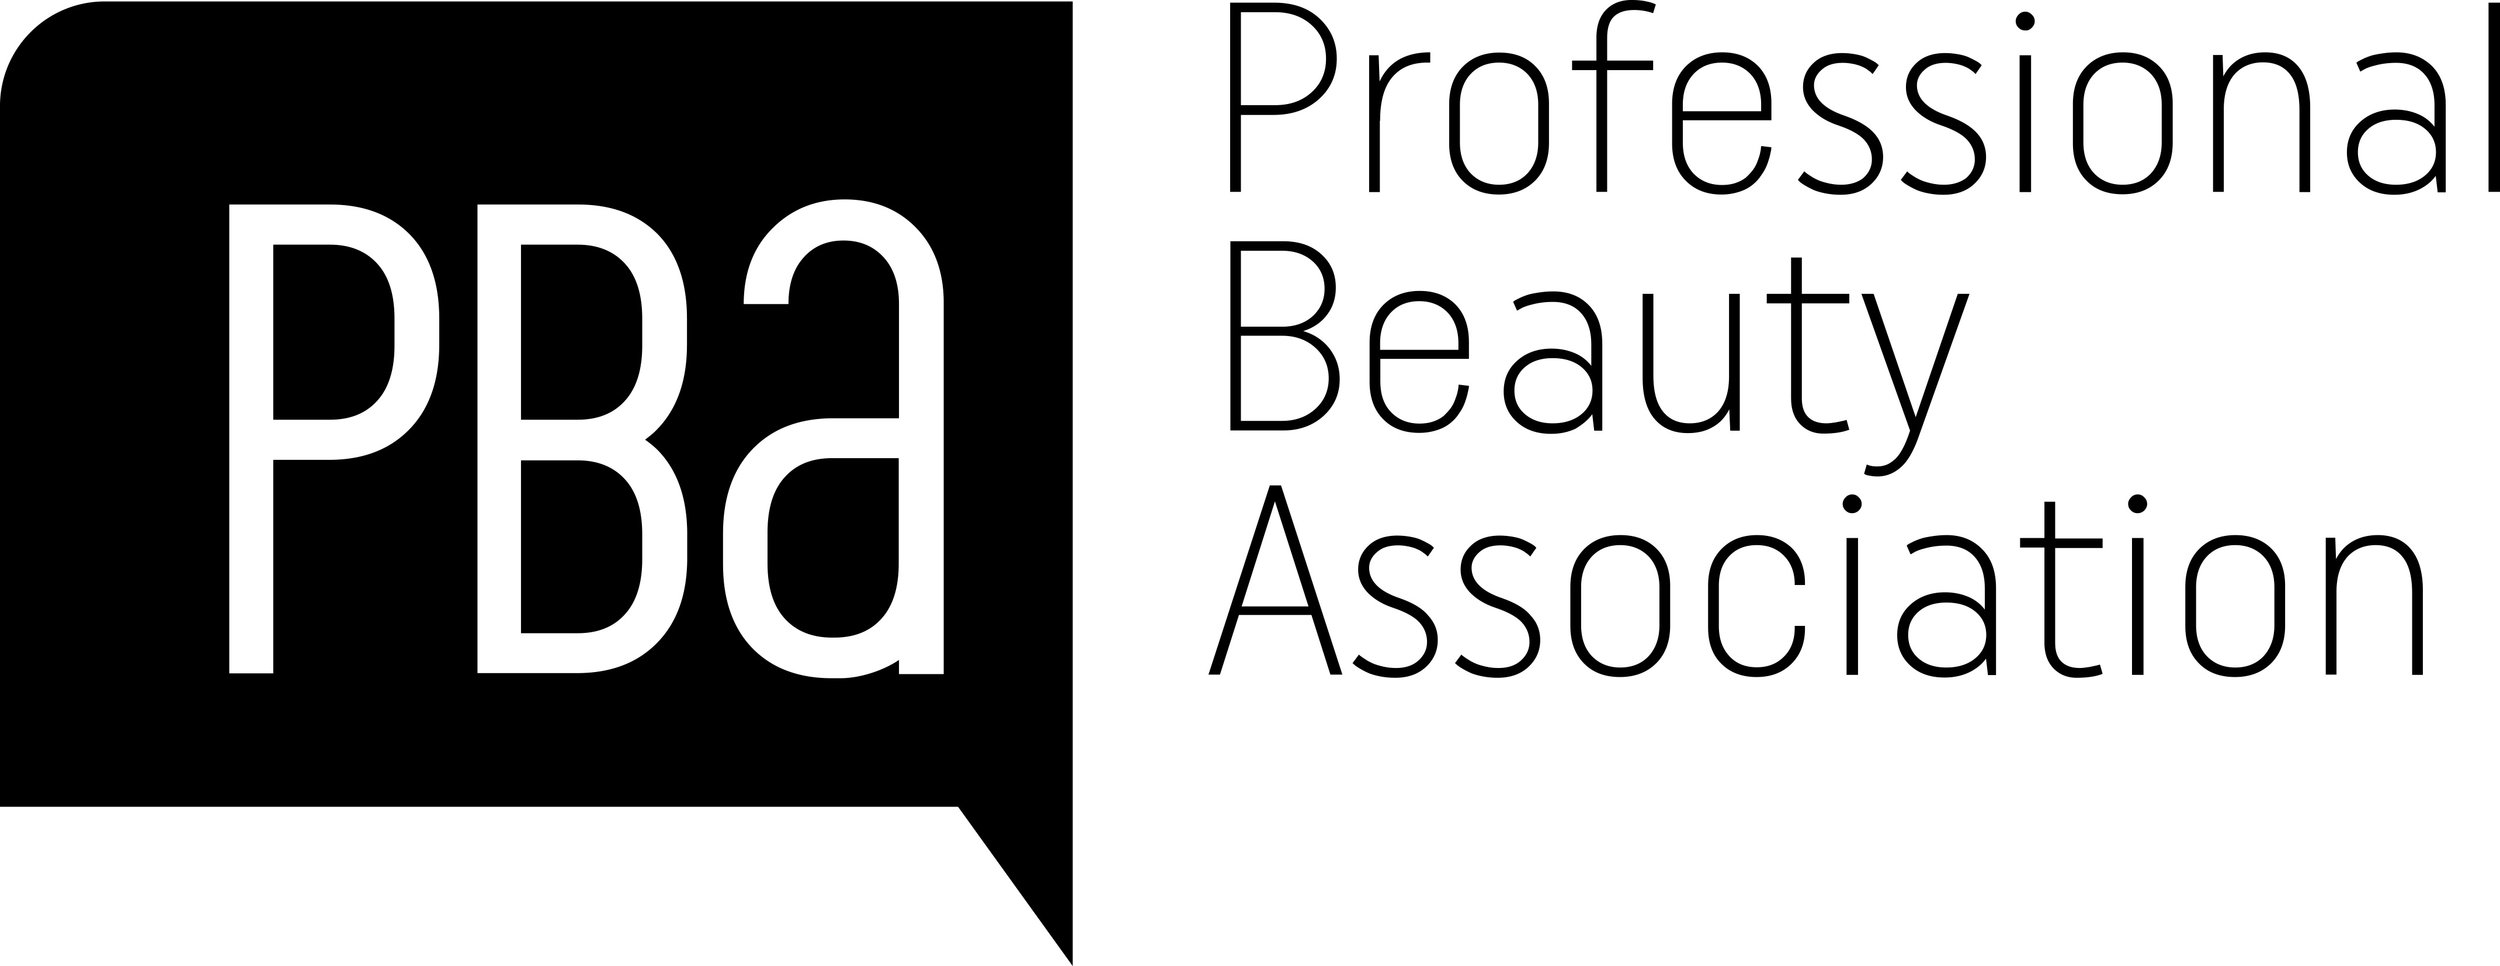 PBA - 100,000 members strong, the Professional Beauty Association (PBA) is the largest and most inclusive trade organization representing licensed professionals, salons, manufacturers, distributors, spas, schools, independent practitioners and students. PBA produces some of the industry's most renowned programs and events; such as the North American Hairstyling Awards (NAHA), International Salon and Spa Expo (ISSE), Beacon, CUT IT OUT and the Disaster Relief Fund.Formed by the merger of the Beauty and Barber Supply Institute (BBSI), American Beauty Association (ABA), The Salon Association (TSA), and the National Cosmetology Association (NCA), the Professional Beauty Association exists to elevate, unify and serve the beauty industry and the professionals who improve people's lives.